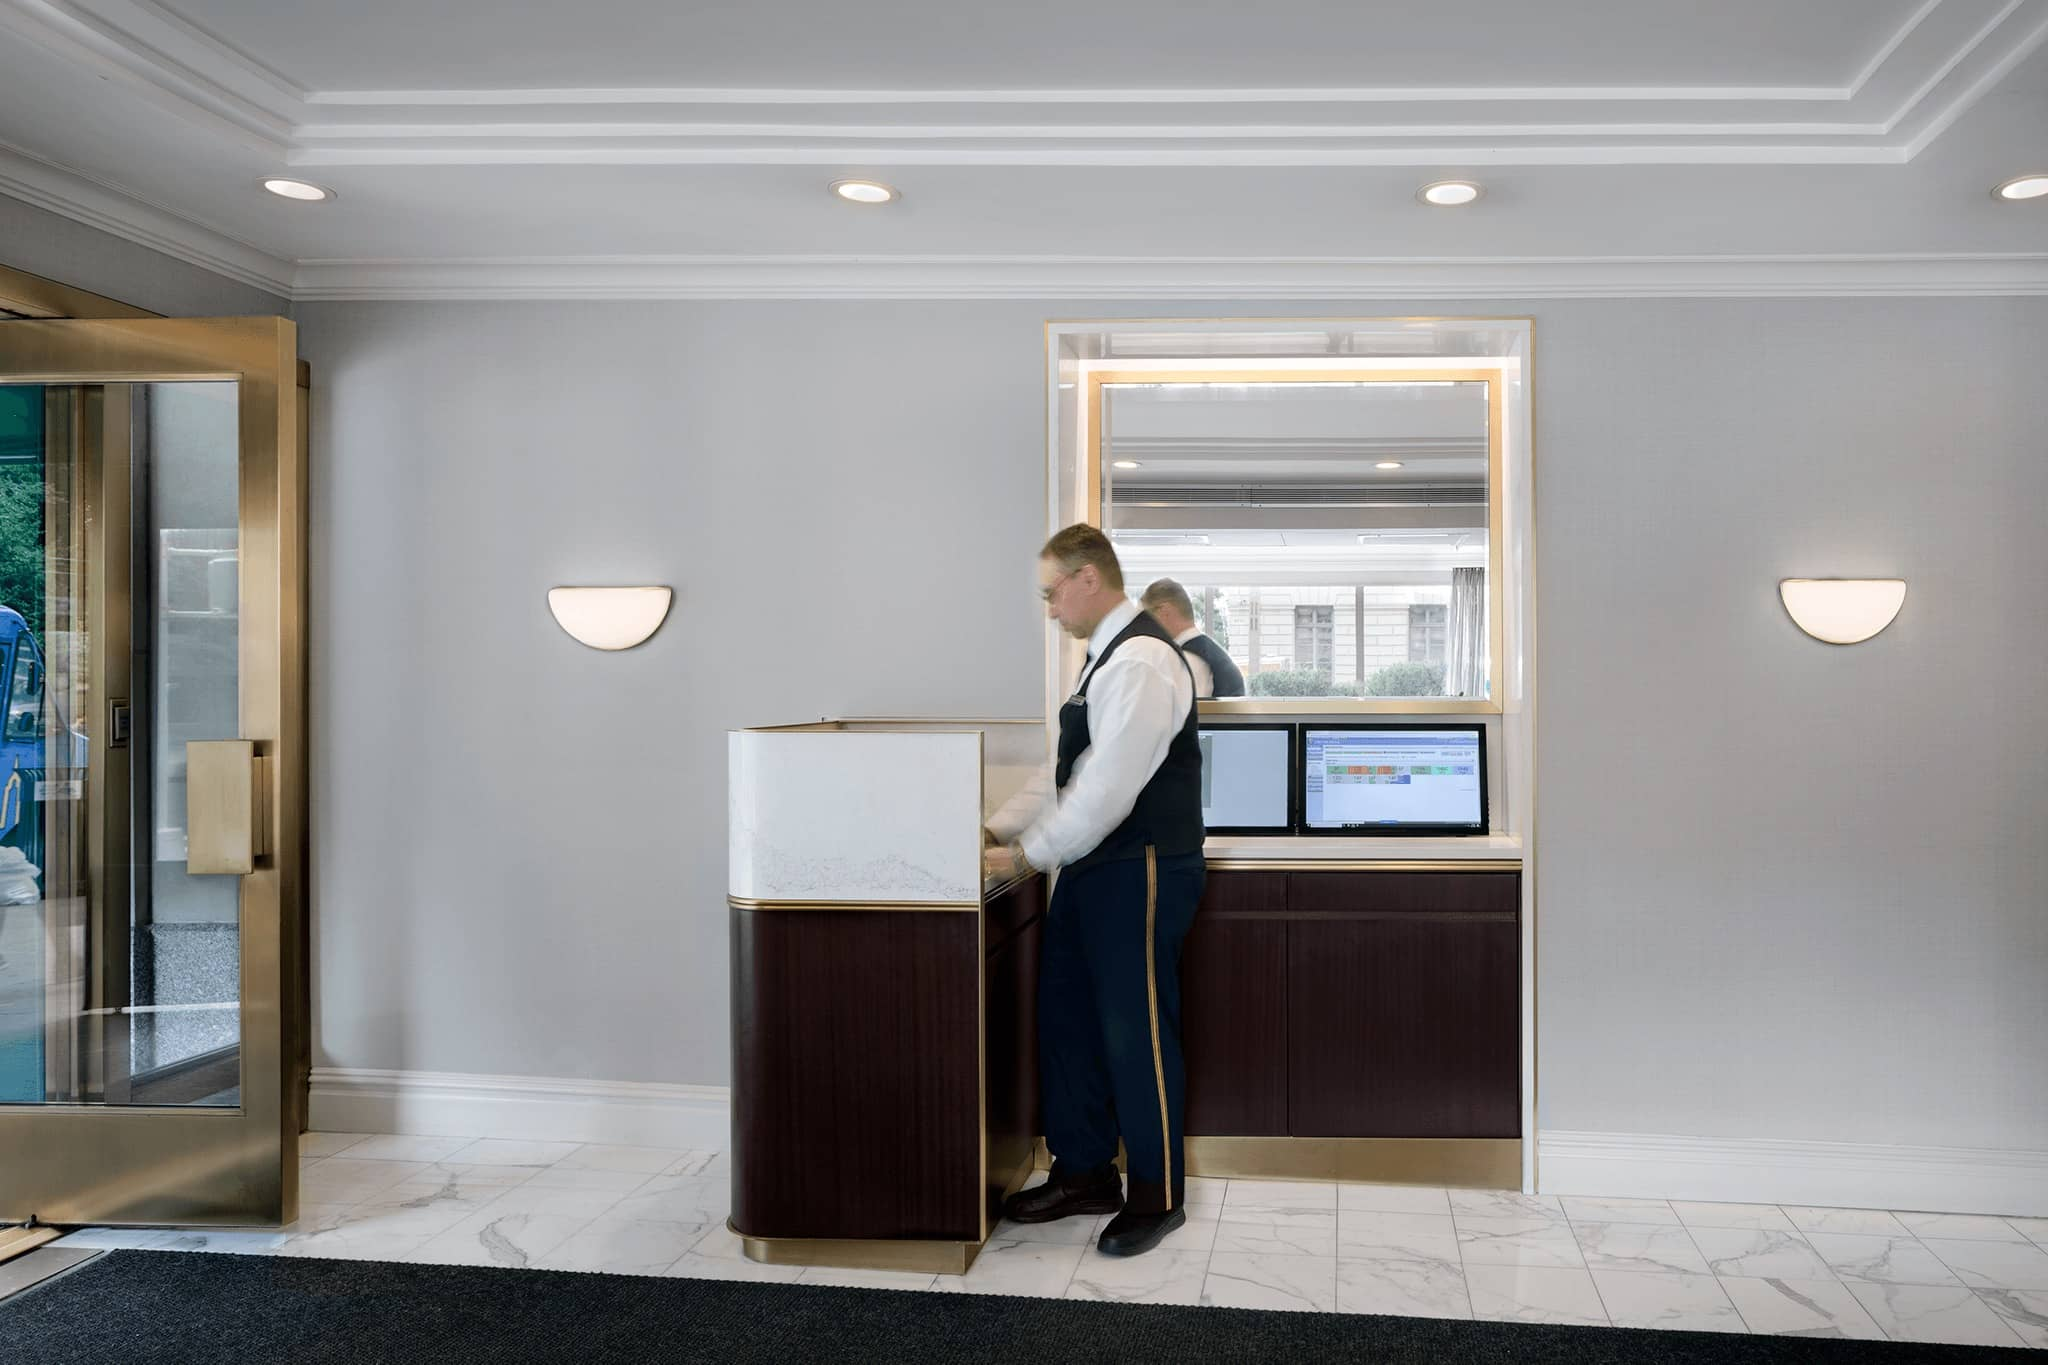 Man standing at concierge desk at 1050 Fifth Avenue.